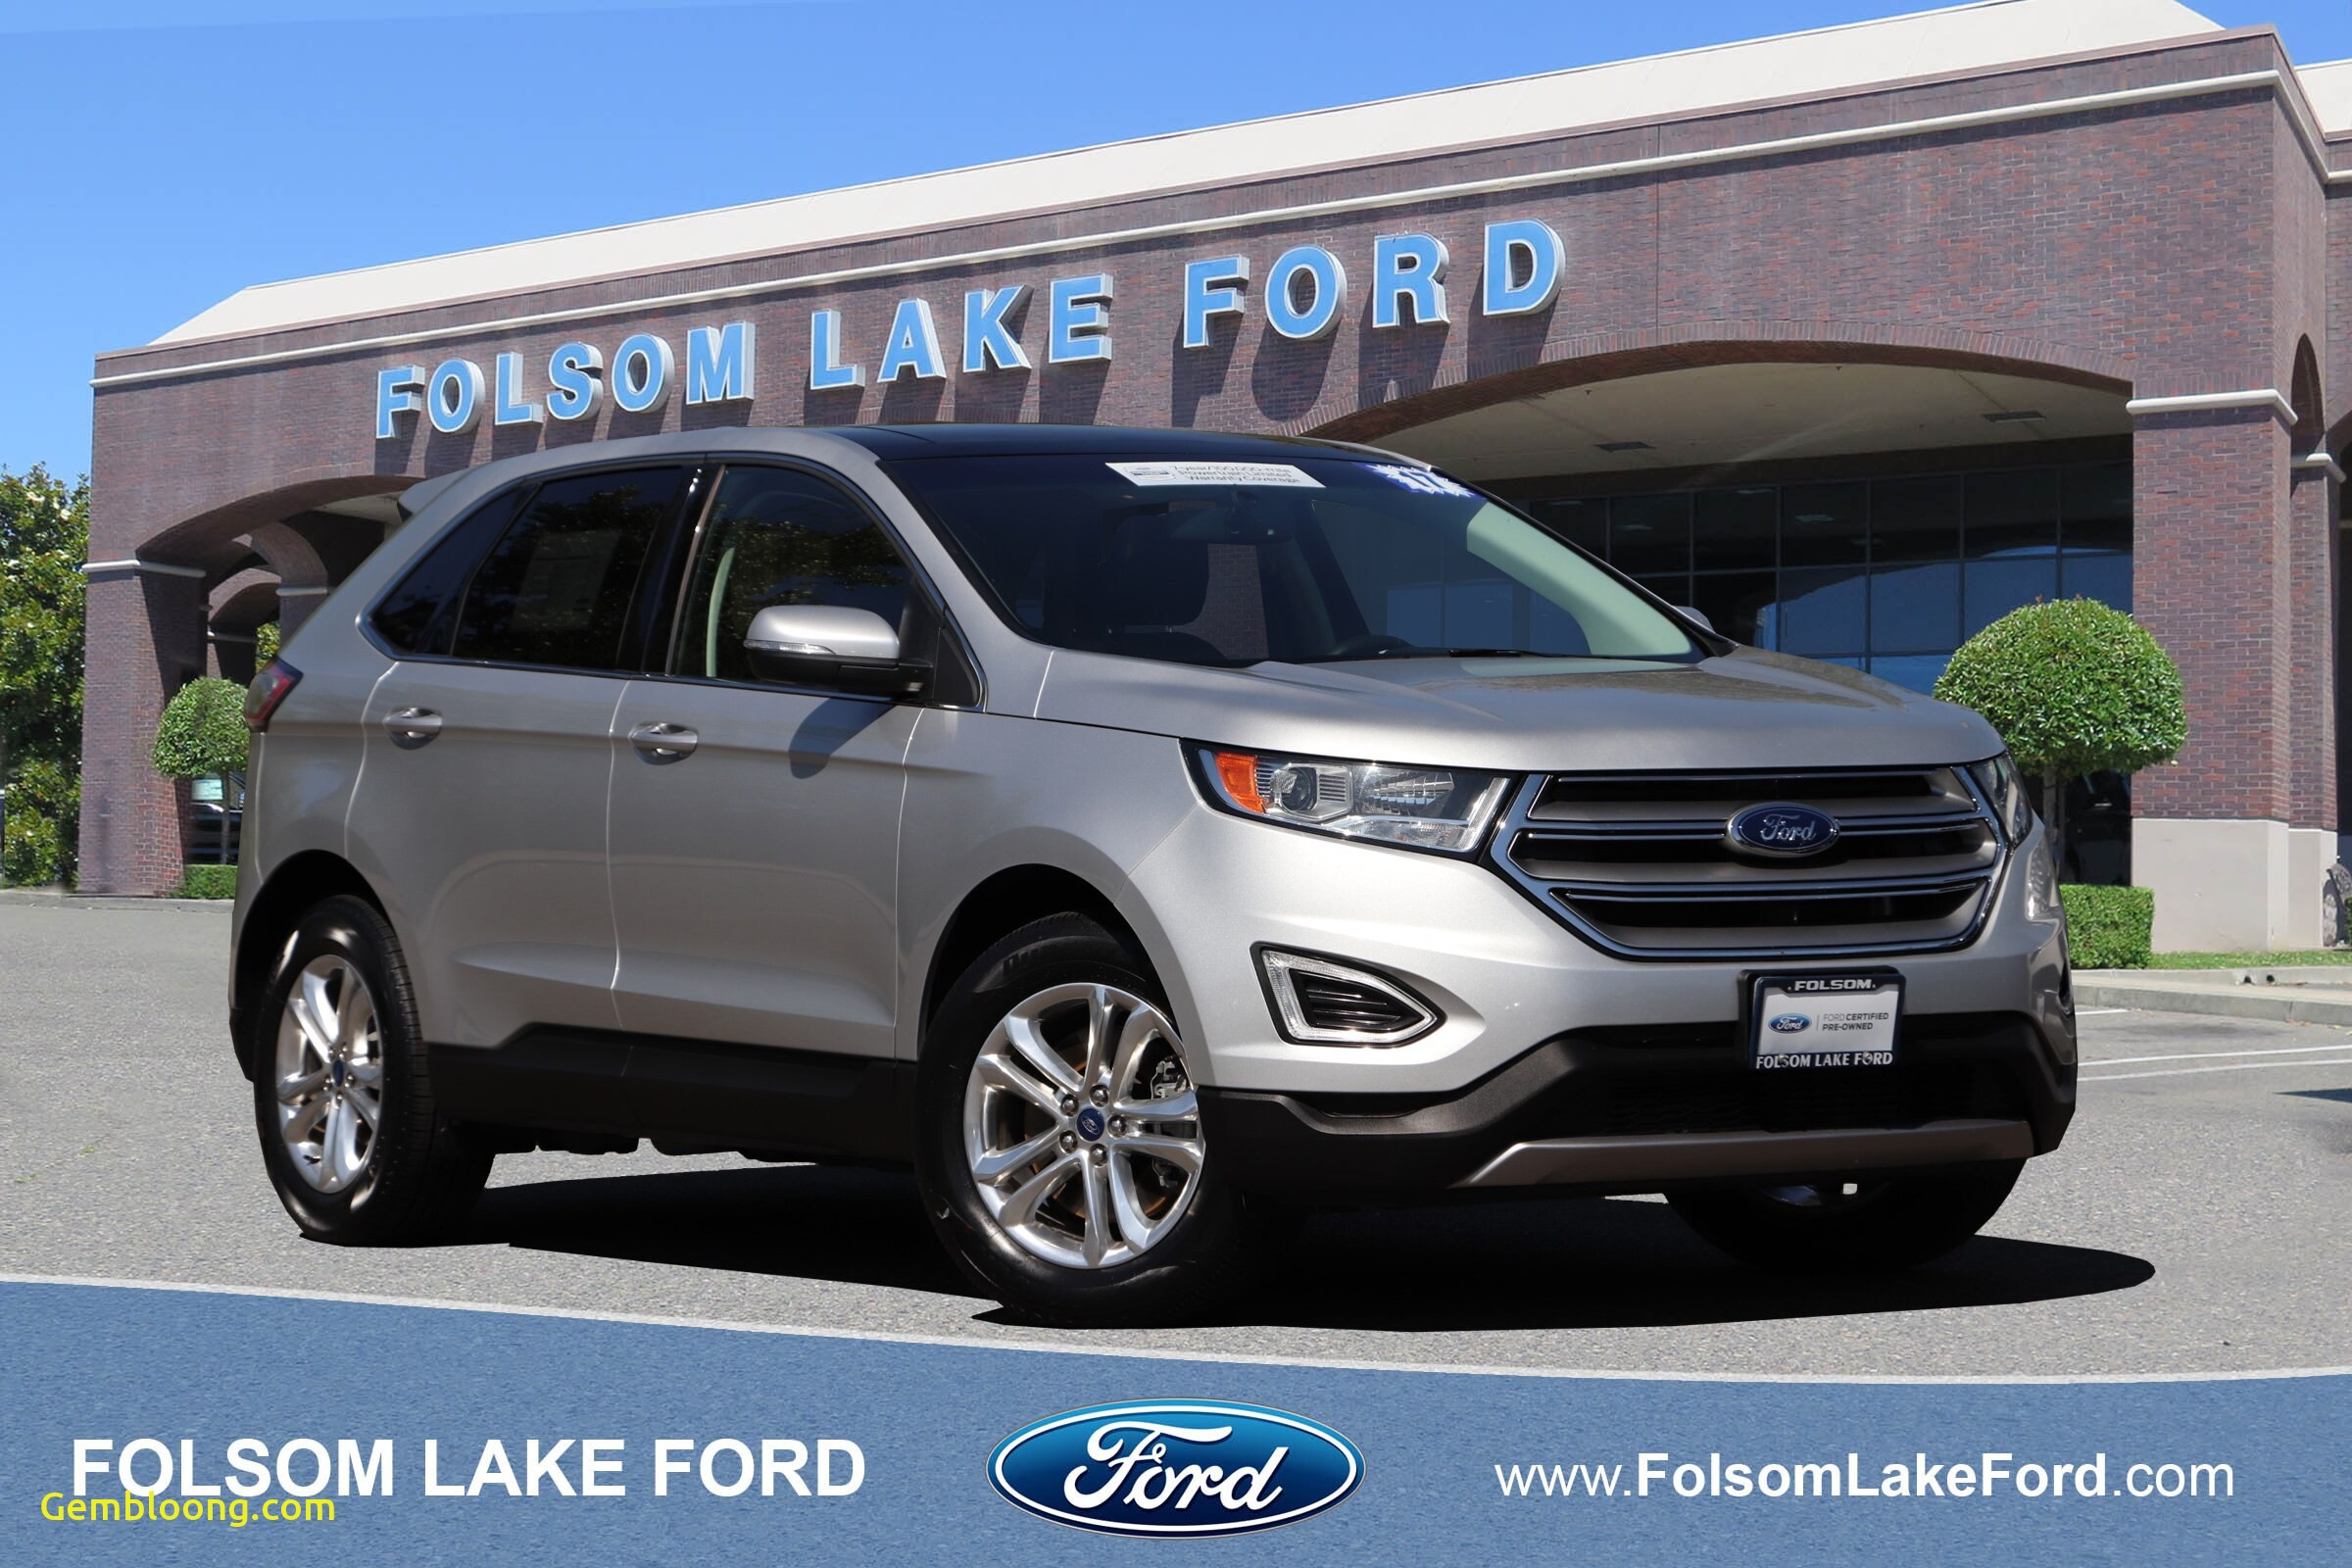 Who Owns Carfax Fresh Certified Used 2017 ford Edge for Sale Folsom Ca